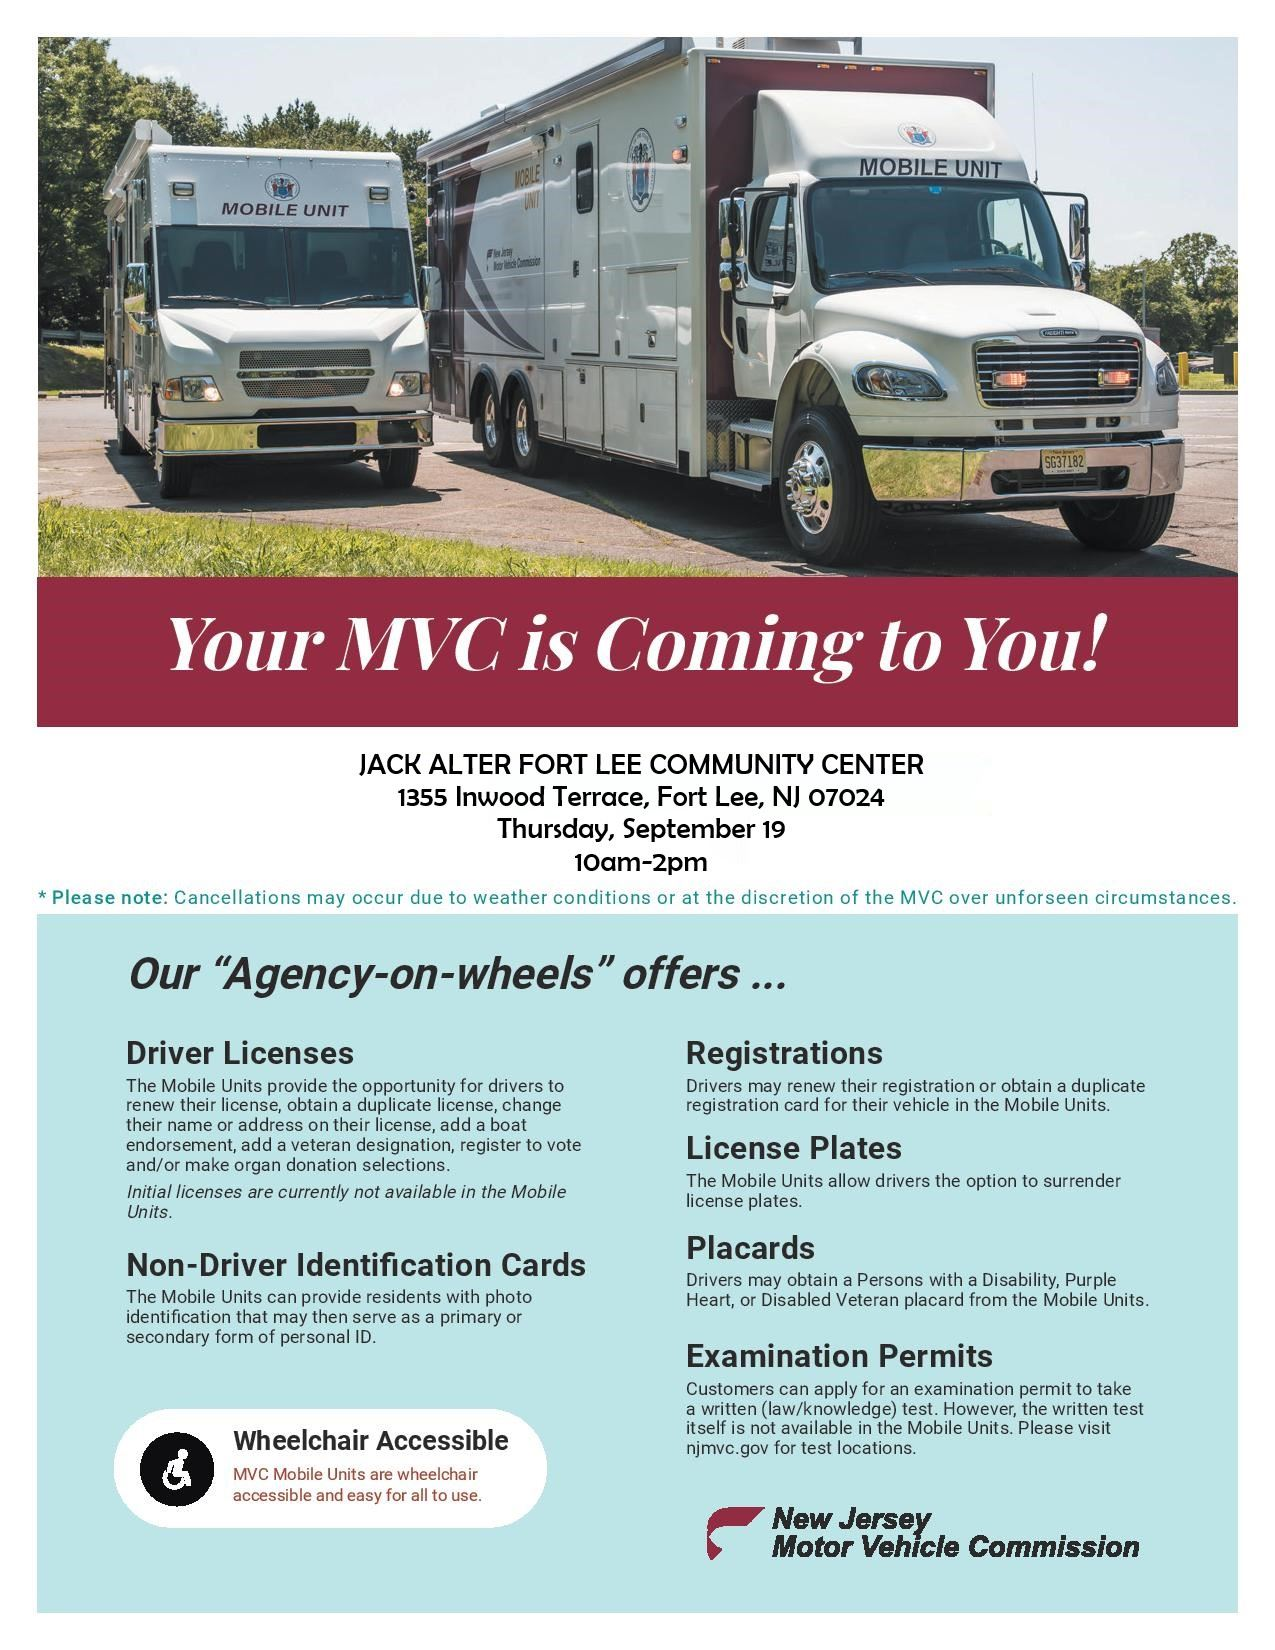 MVC on Wheels Flyer - Fort Lee 2019